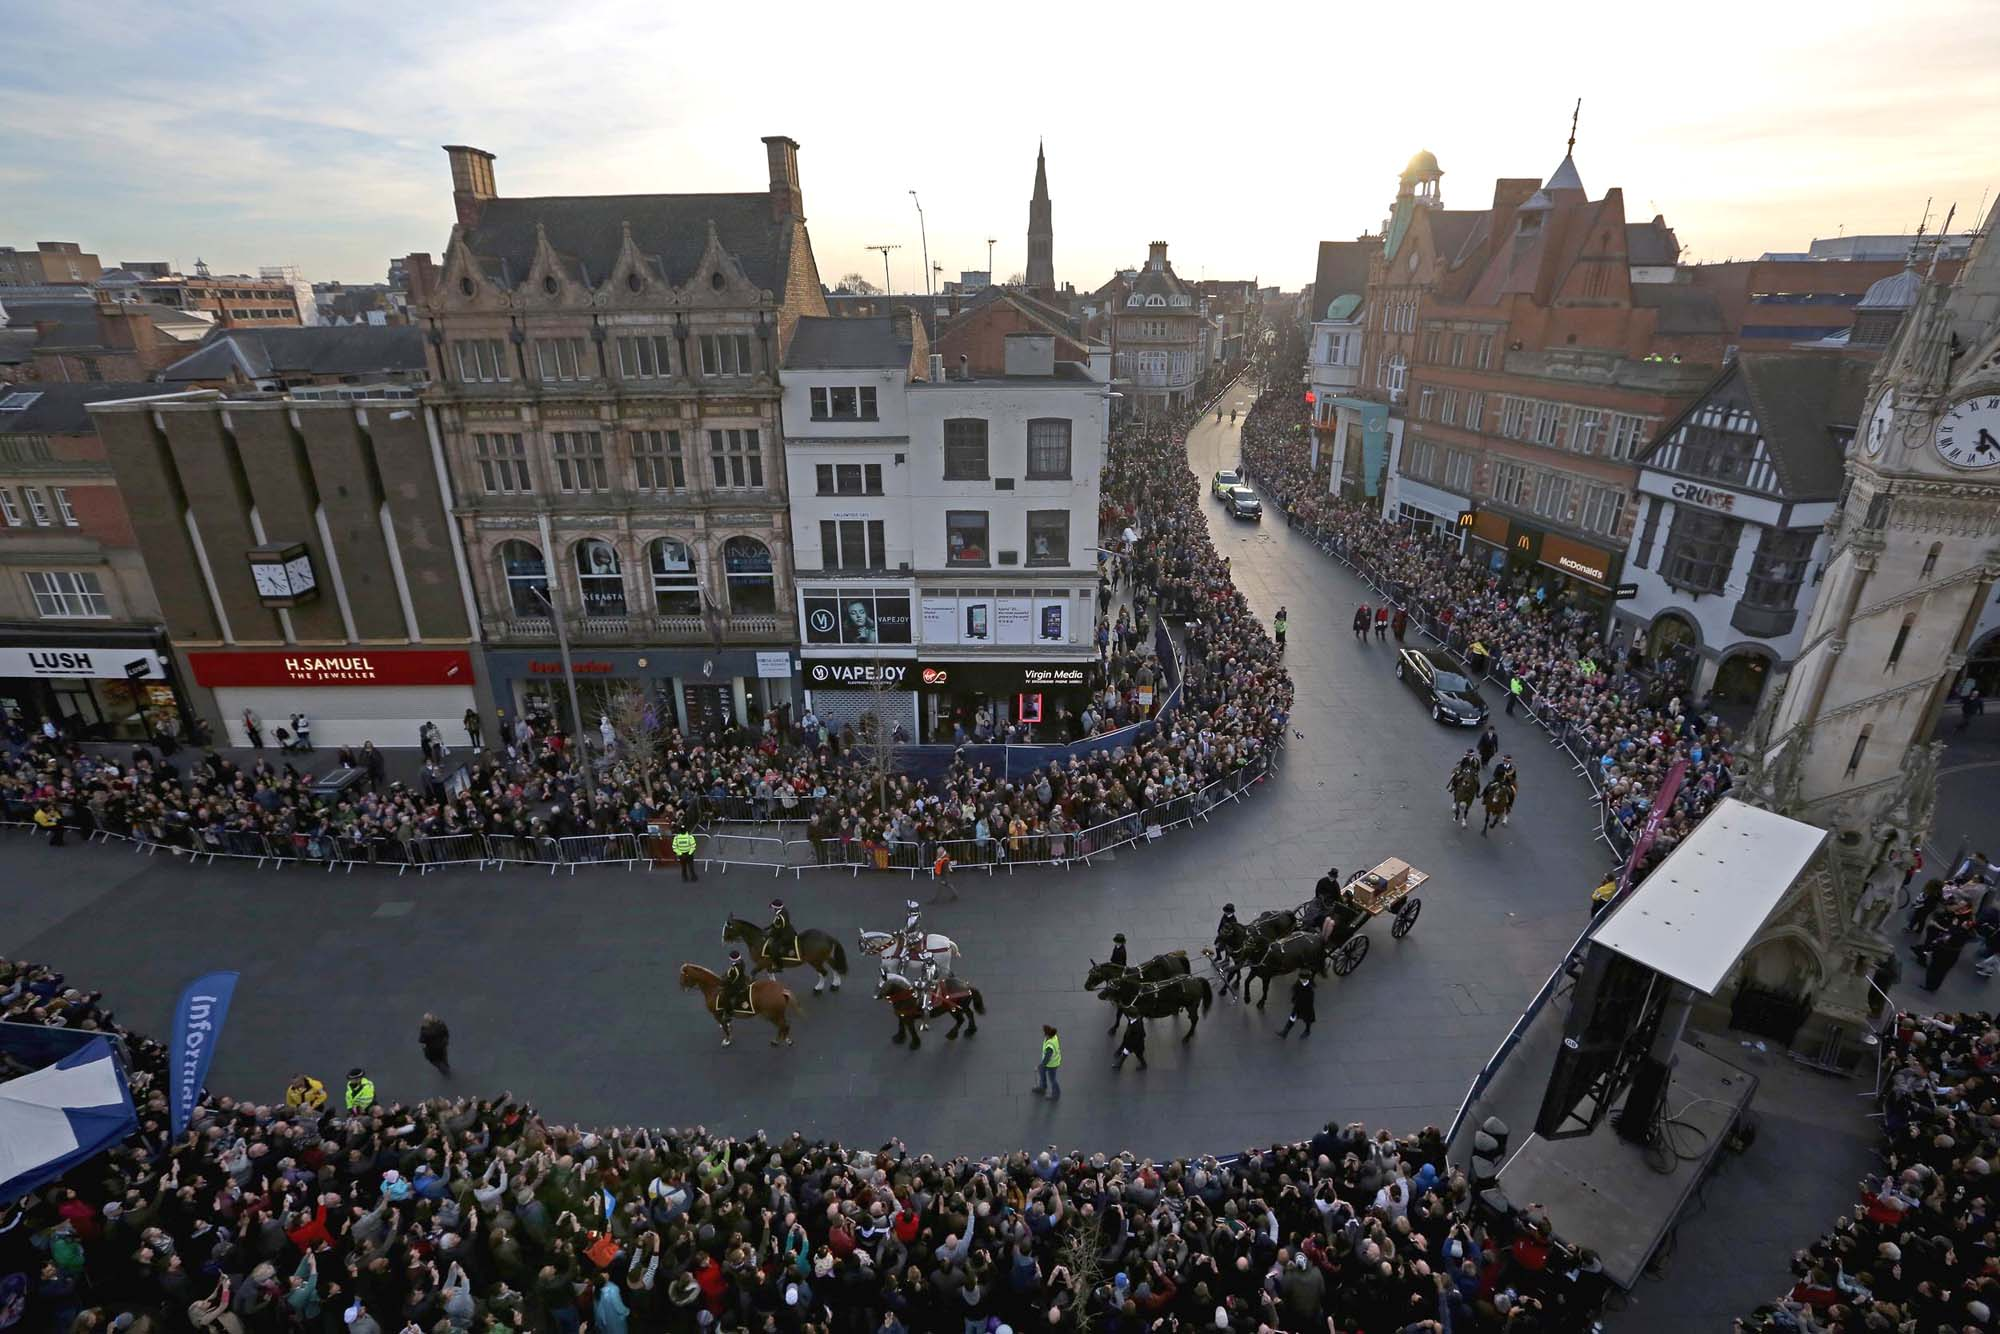 The cortege passes the Clock Tower during the reinterment of Richard III in 2015 -